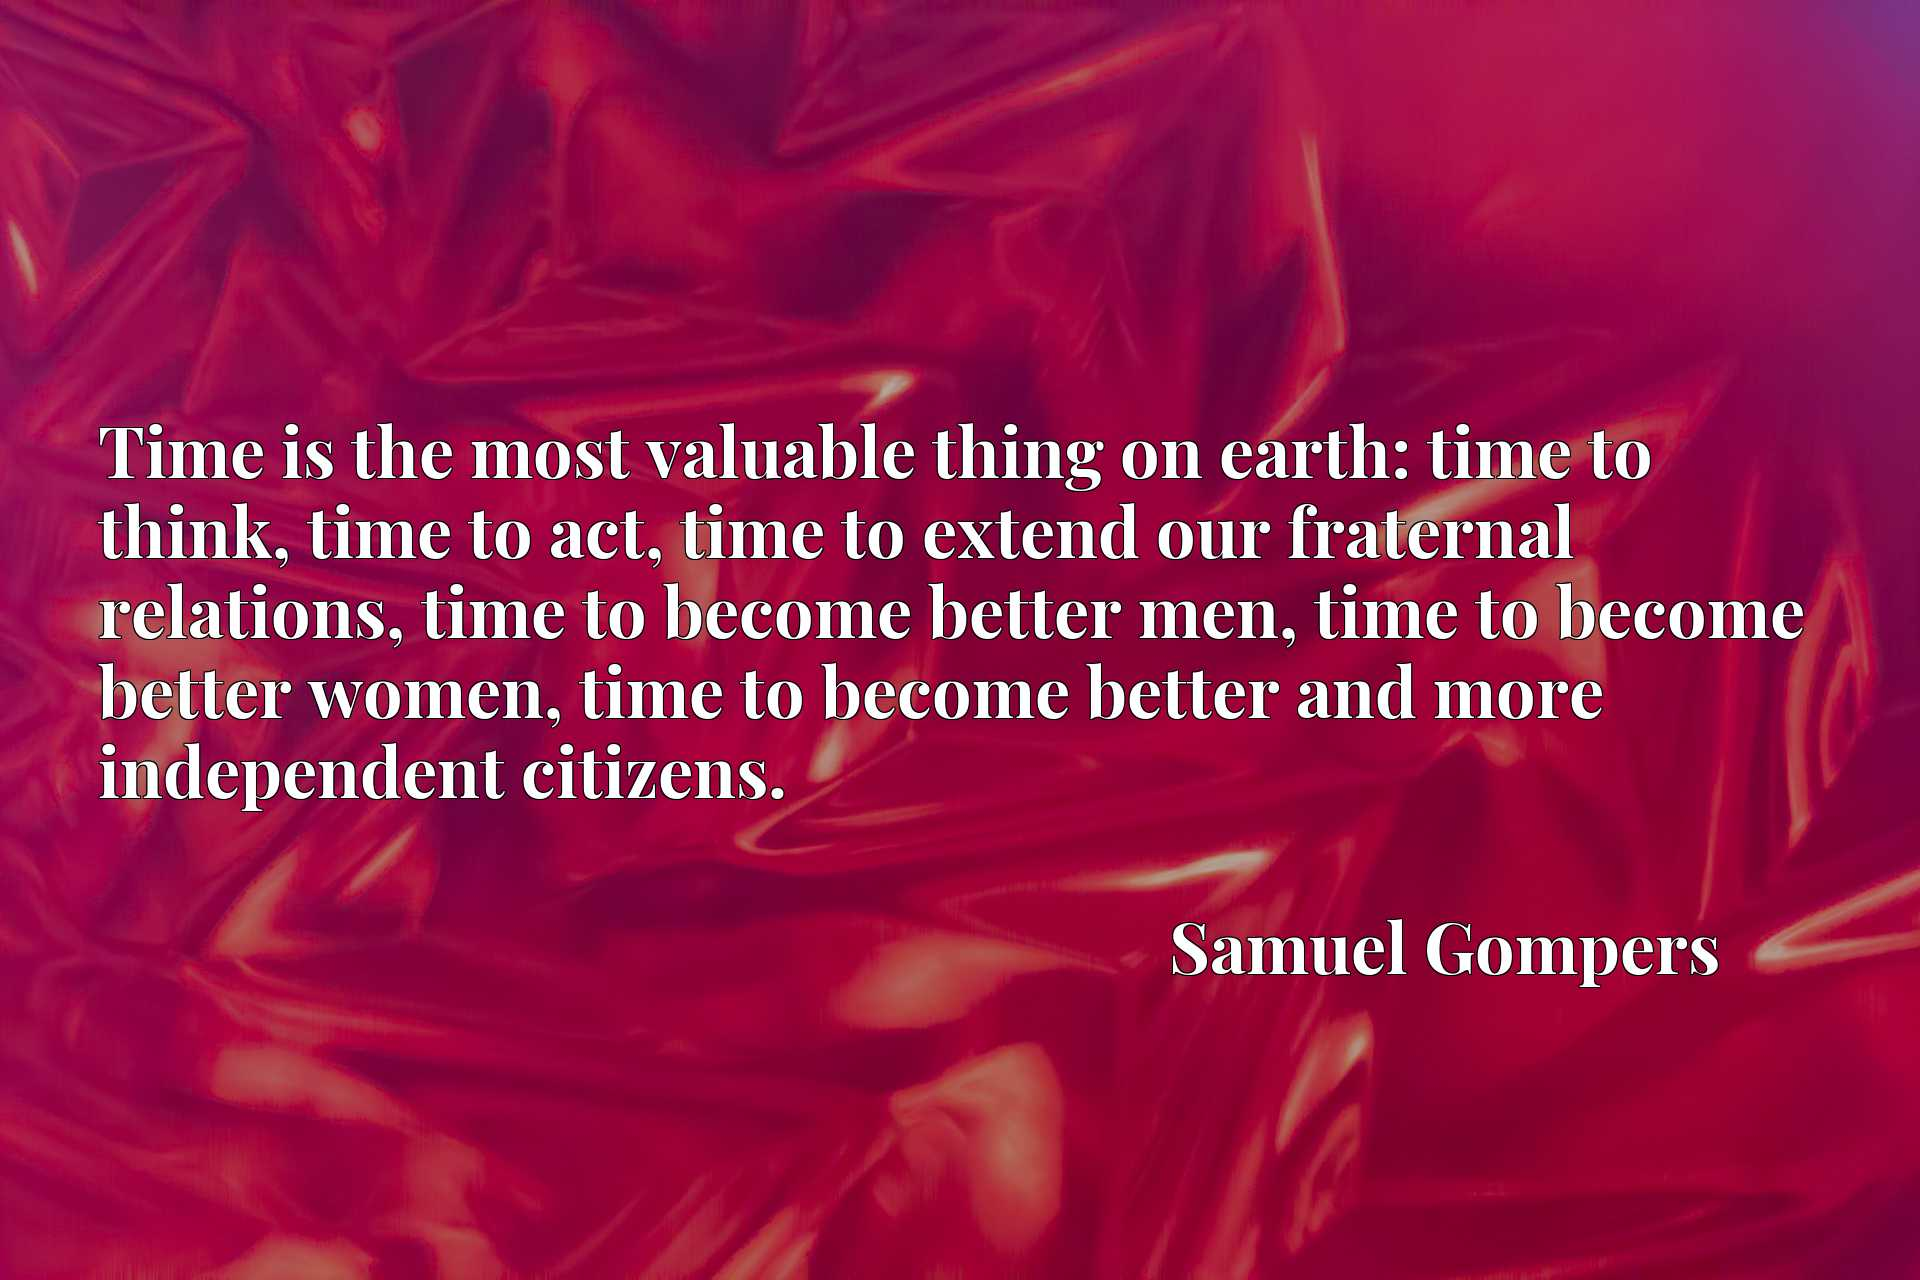 Time is the most valuable thing on earth: time to think, time to act, time to extend our fraternal relations, time to become better men, time to become better women, time to become better and more independent citizens.